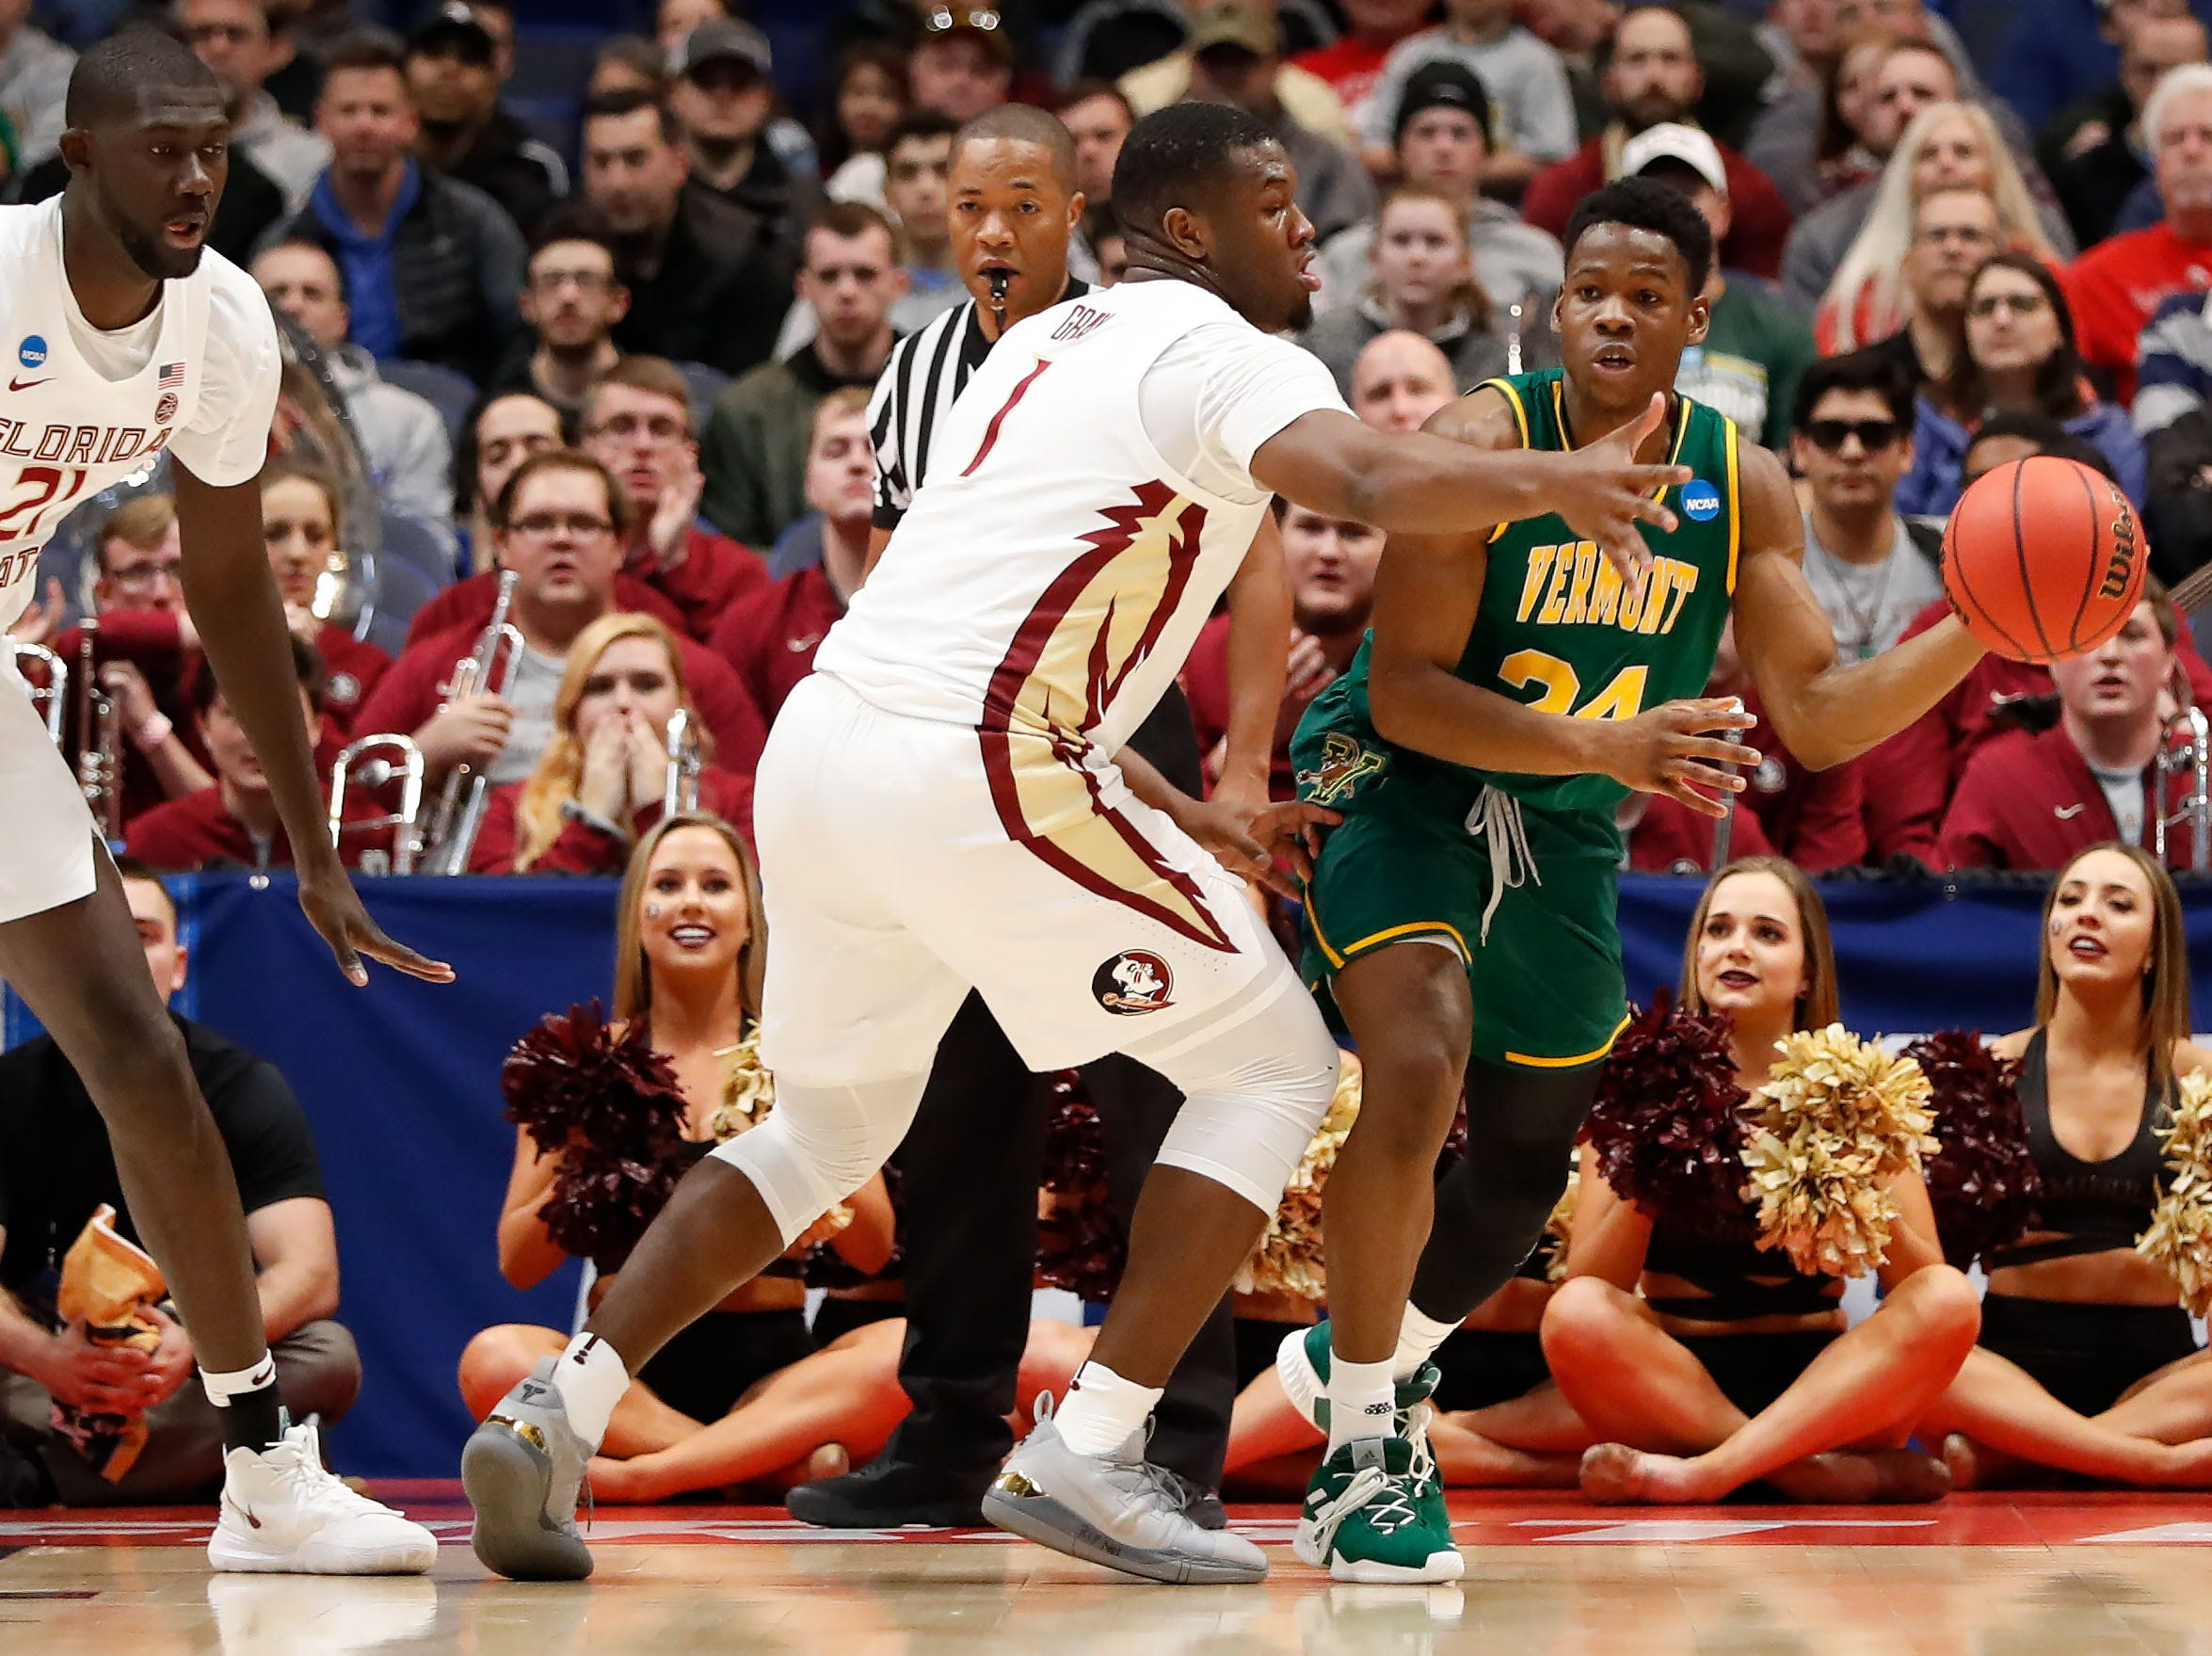 Mar 21, 2019; Hartford, CT, USA; Vermont Catamounts guard Ben Shungu (24) looks to pass around Florida State Seminoles forward Raiquan Gray (1) during the first half of game in the first round of the 2019 NCAA Tournament at XL Center. Mandatory Credit: David Butler II-USA TODAY Sports